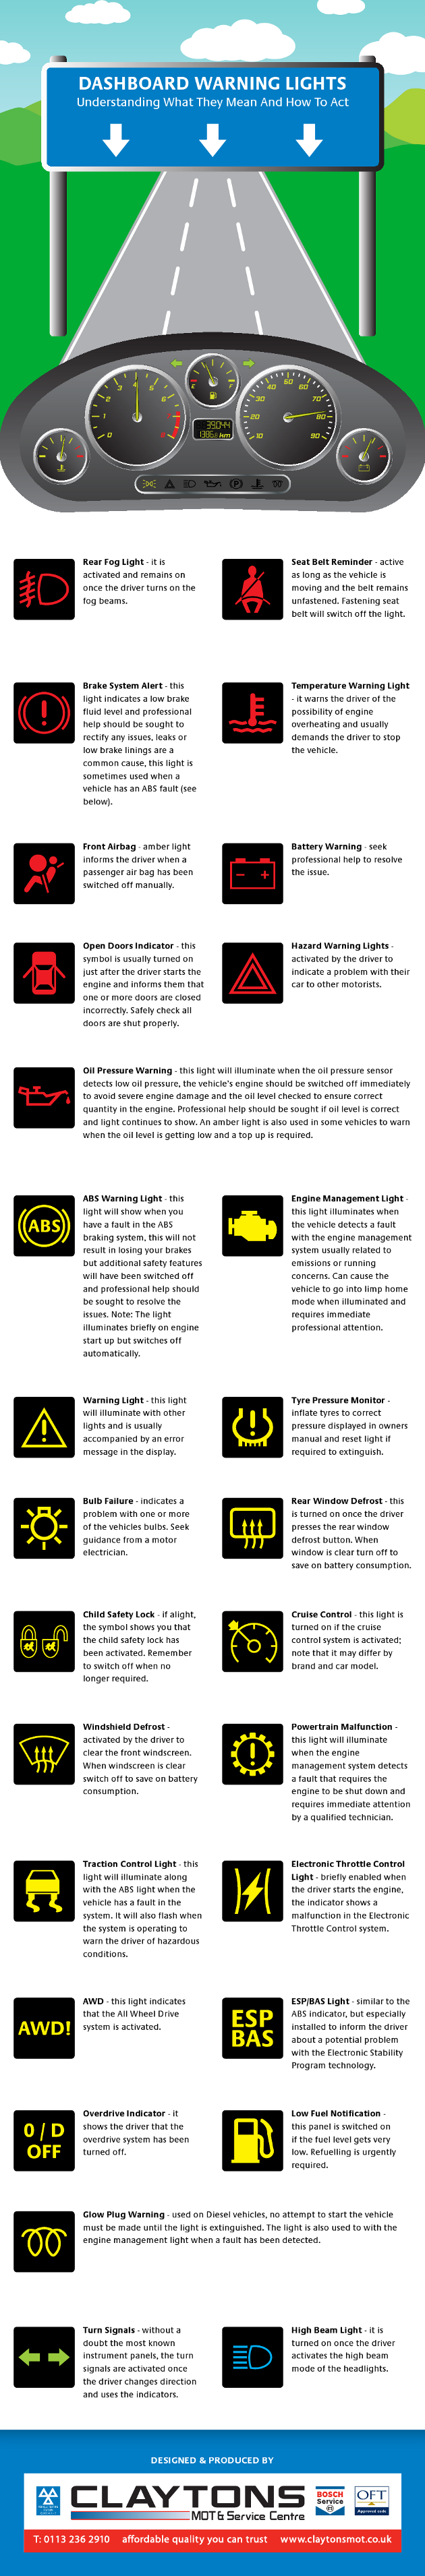 How to read the dashboard warning lights instrument panel buycottarizona